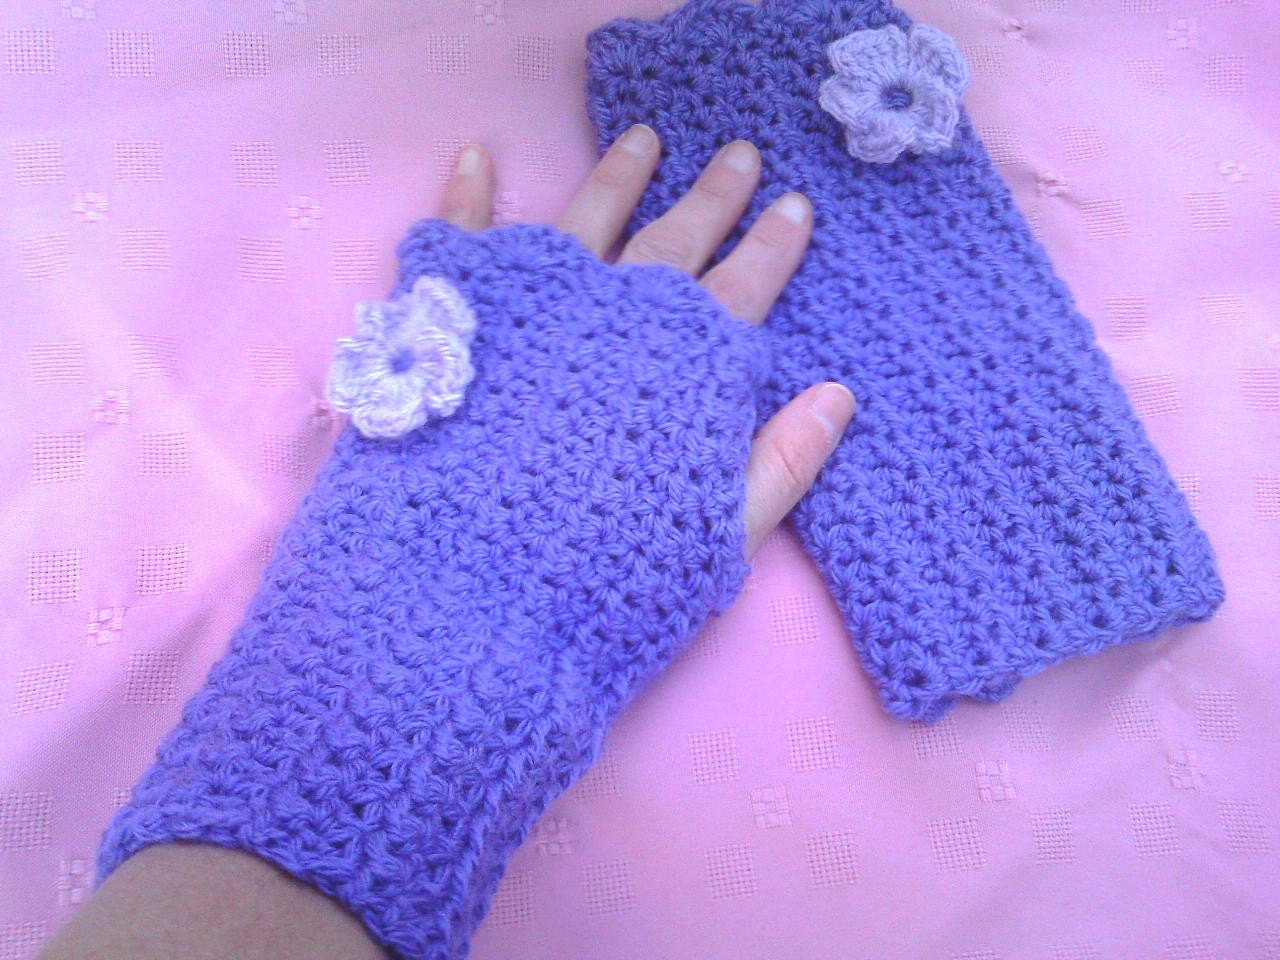 midnight knitter - punk crochet wrist warmers